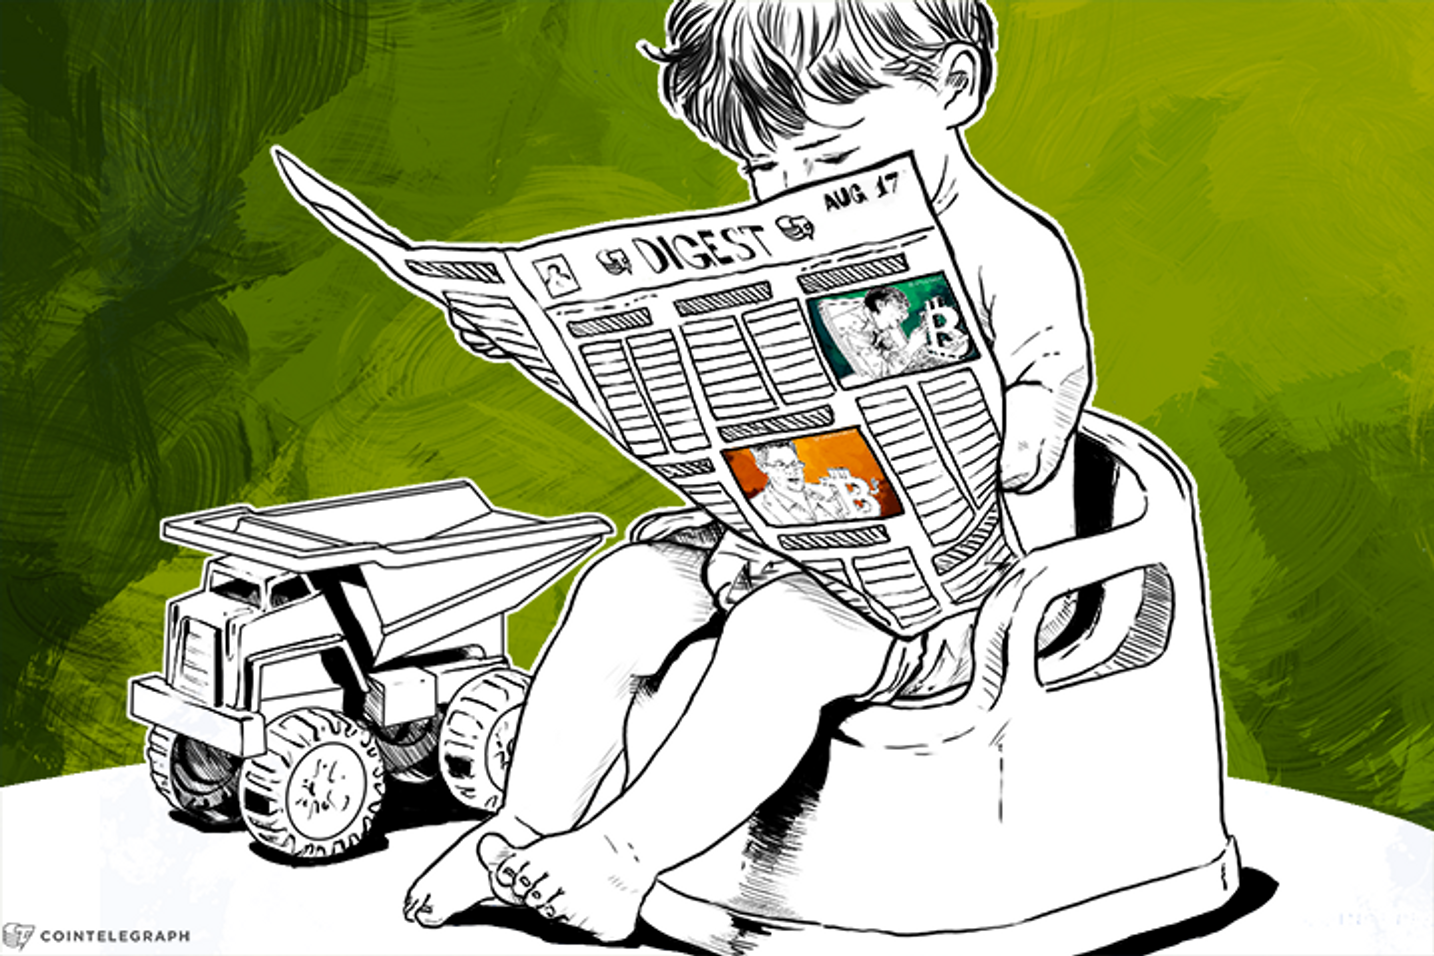 AUG 17 DIGEST: Bitcoin XT Released, Reddit Mods Accused of Censorship, and Dark Web Markets Processed more Bitcoin than BitPay in 2014